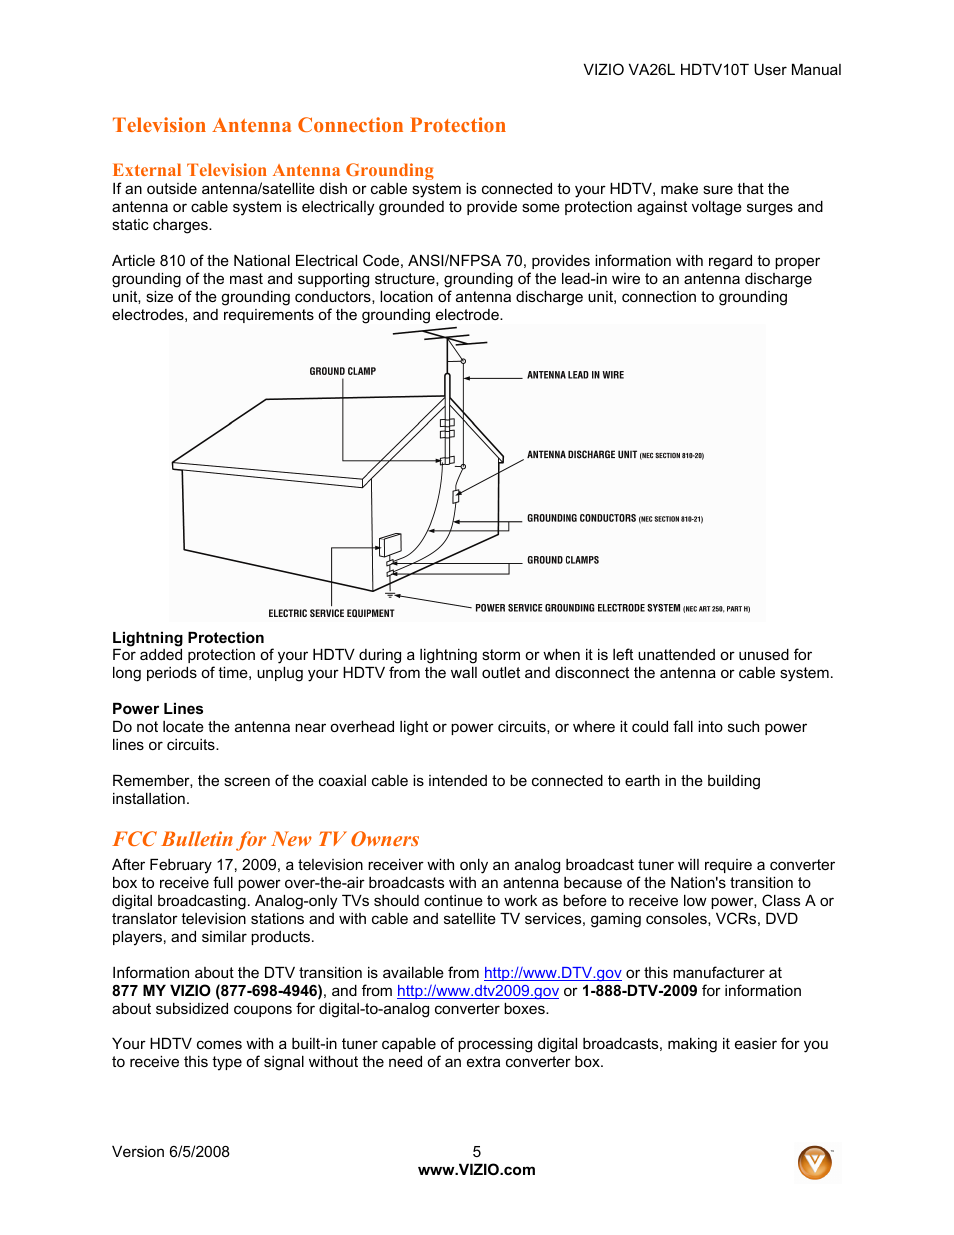 Television Antenna Connection Protection Fcc Bulletin For New Tv House Wiring Diagram Owners Vizio Va26l User Manual Page 4 70